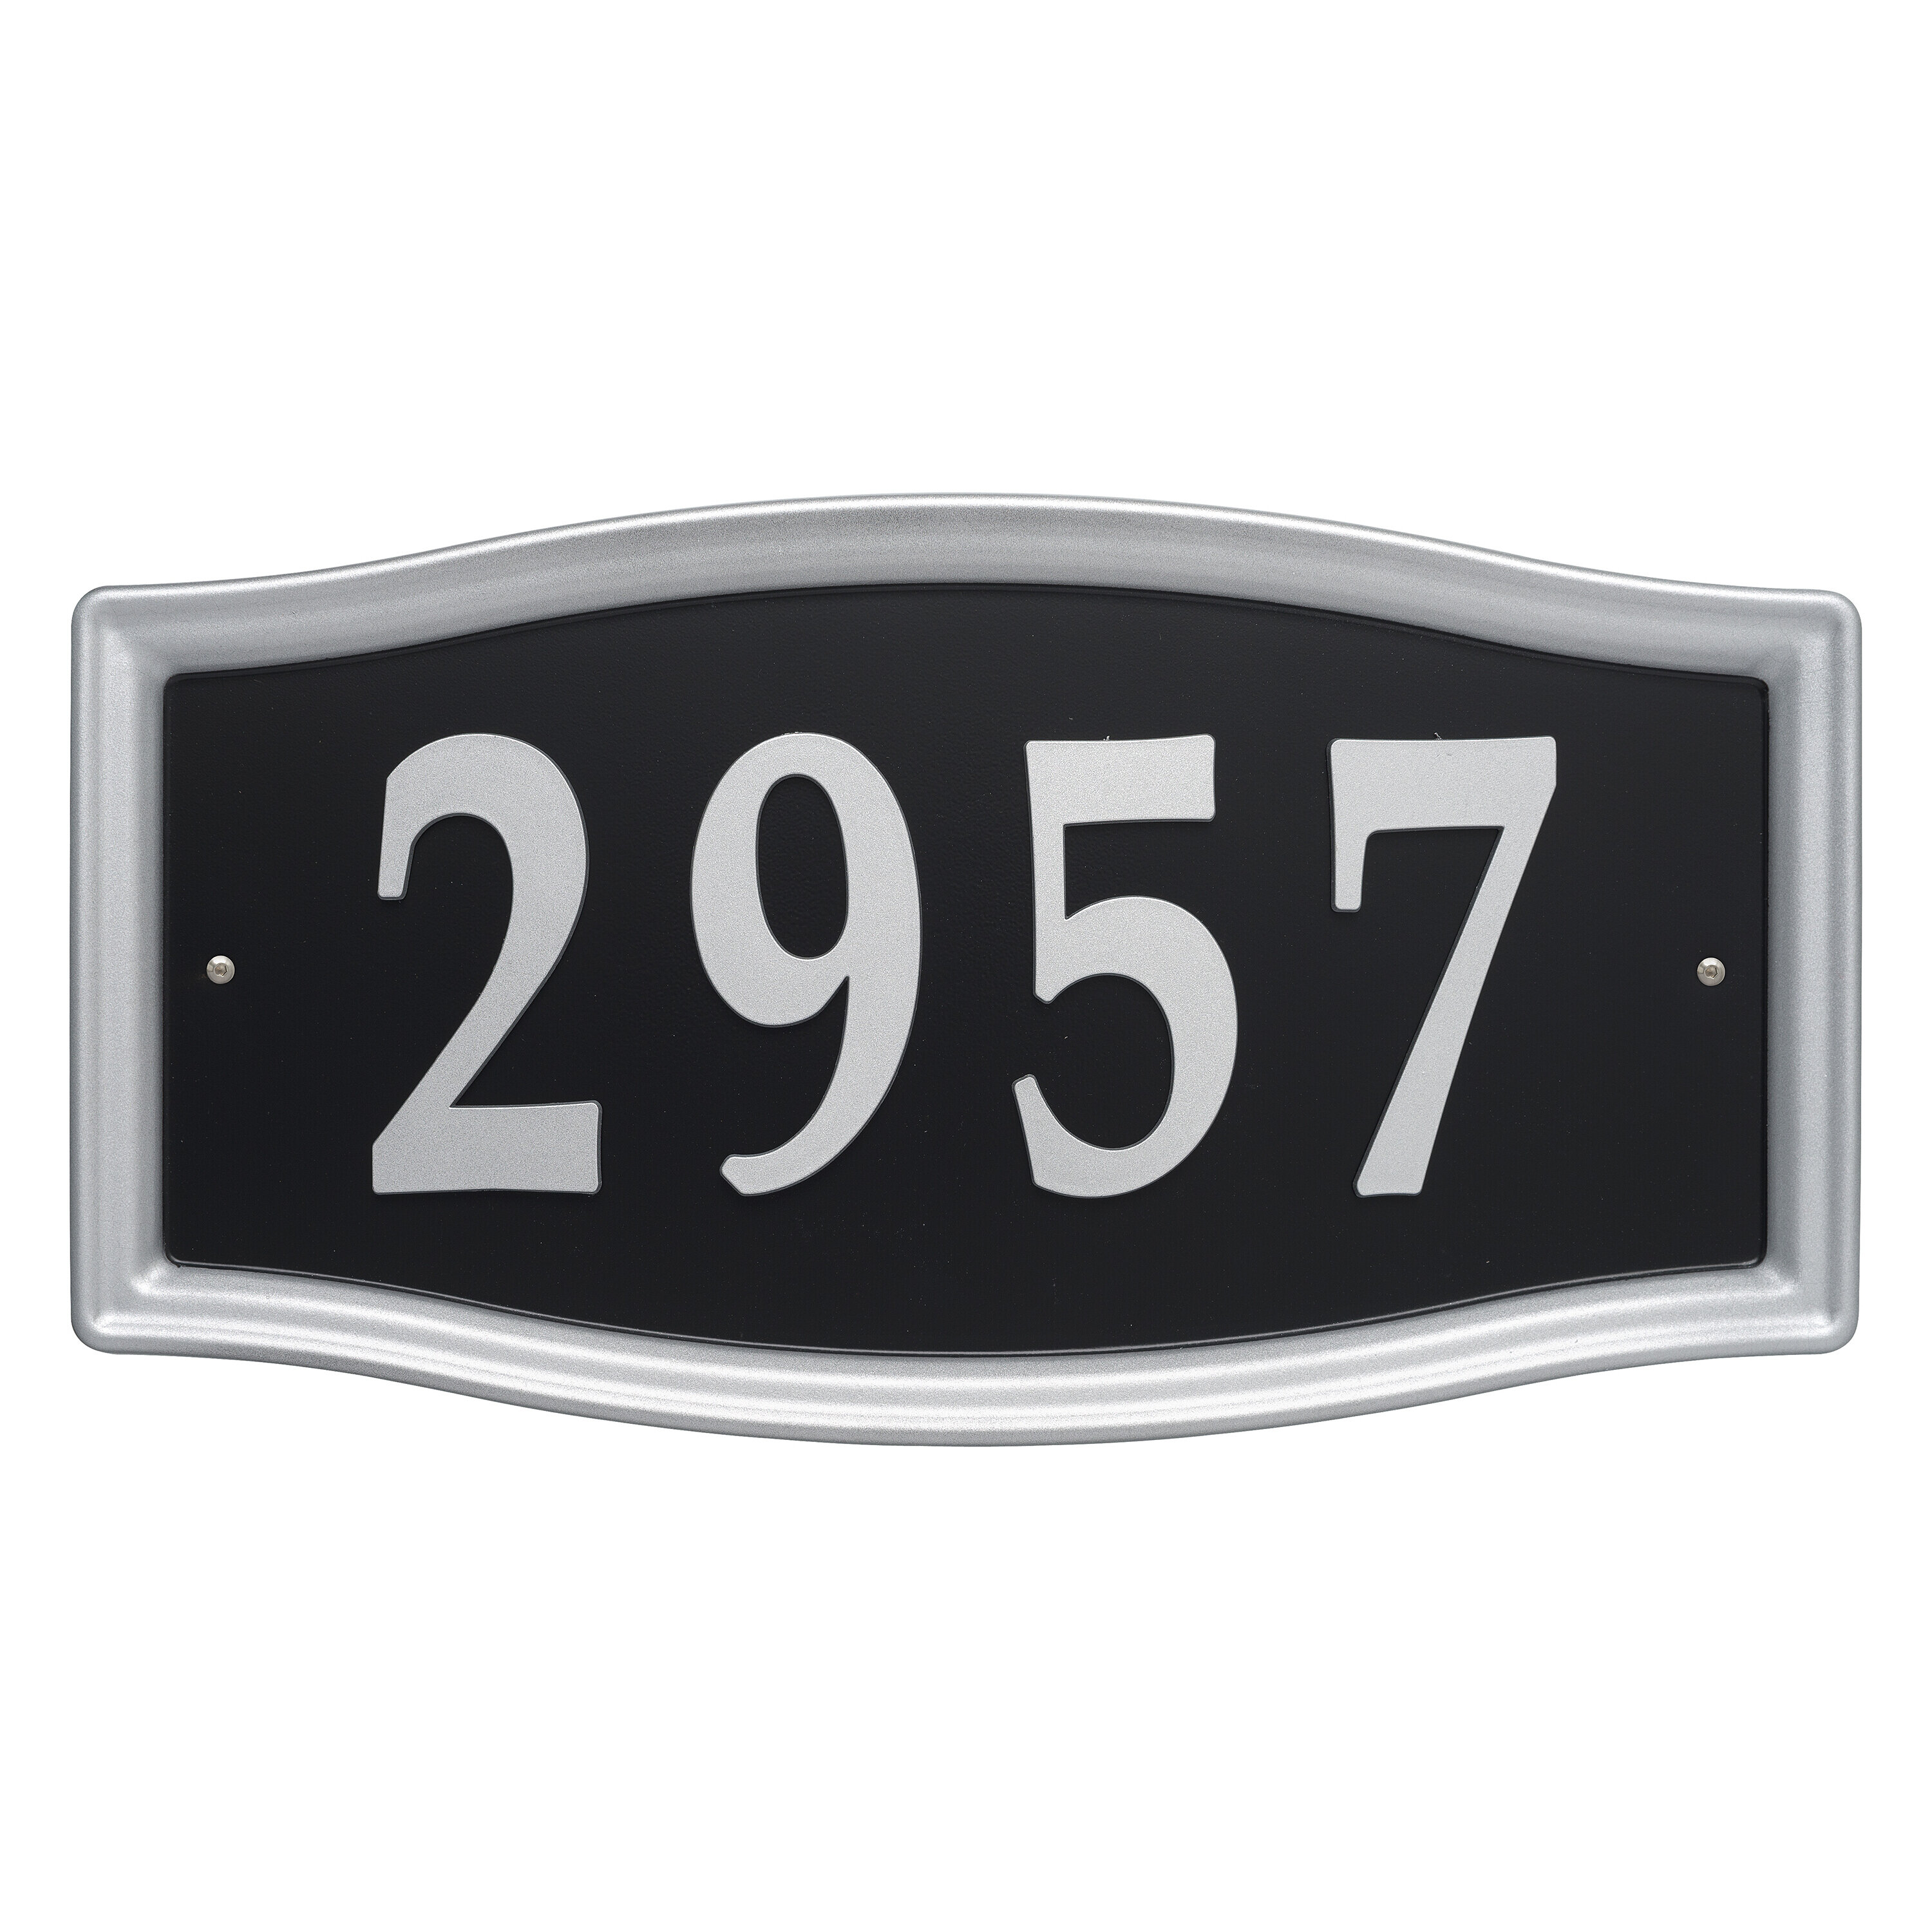 Whitehall Personalized Address Plaque 15 W X 9 5 H Custom 1 Line Cast Aluminum Concord Oval House Number Wall Sign Black Silver Patio Lawn Garden Coastalcameraclub Outdoor Décor